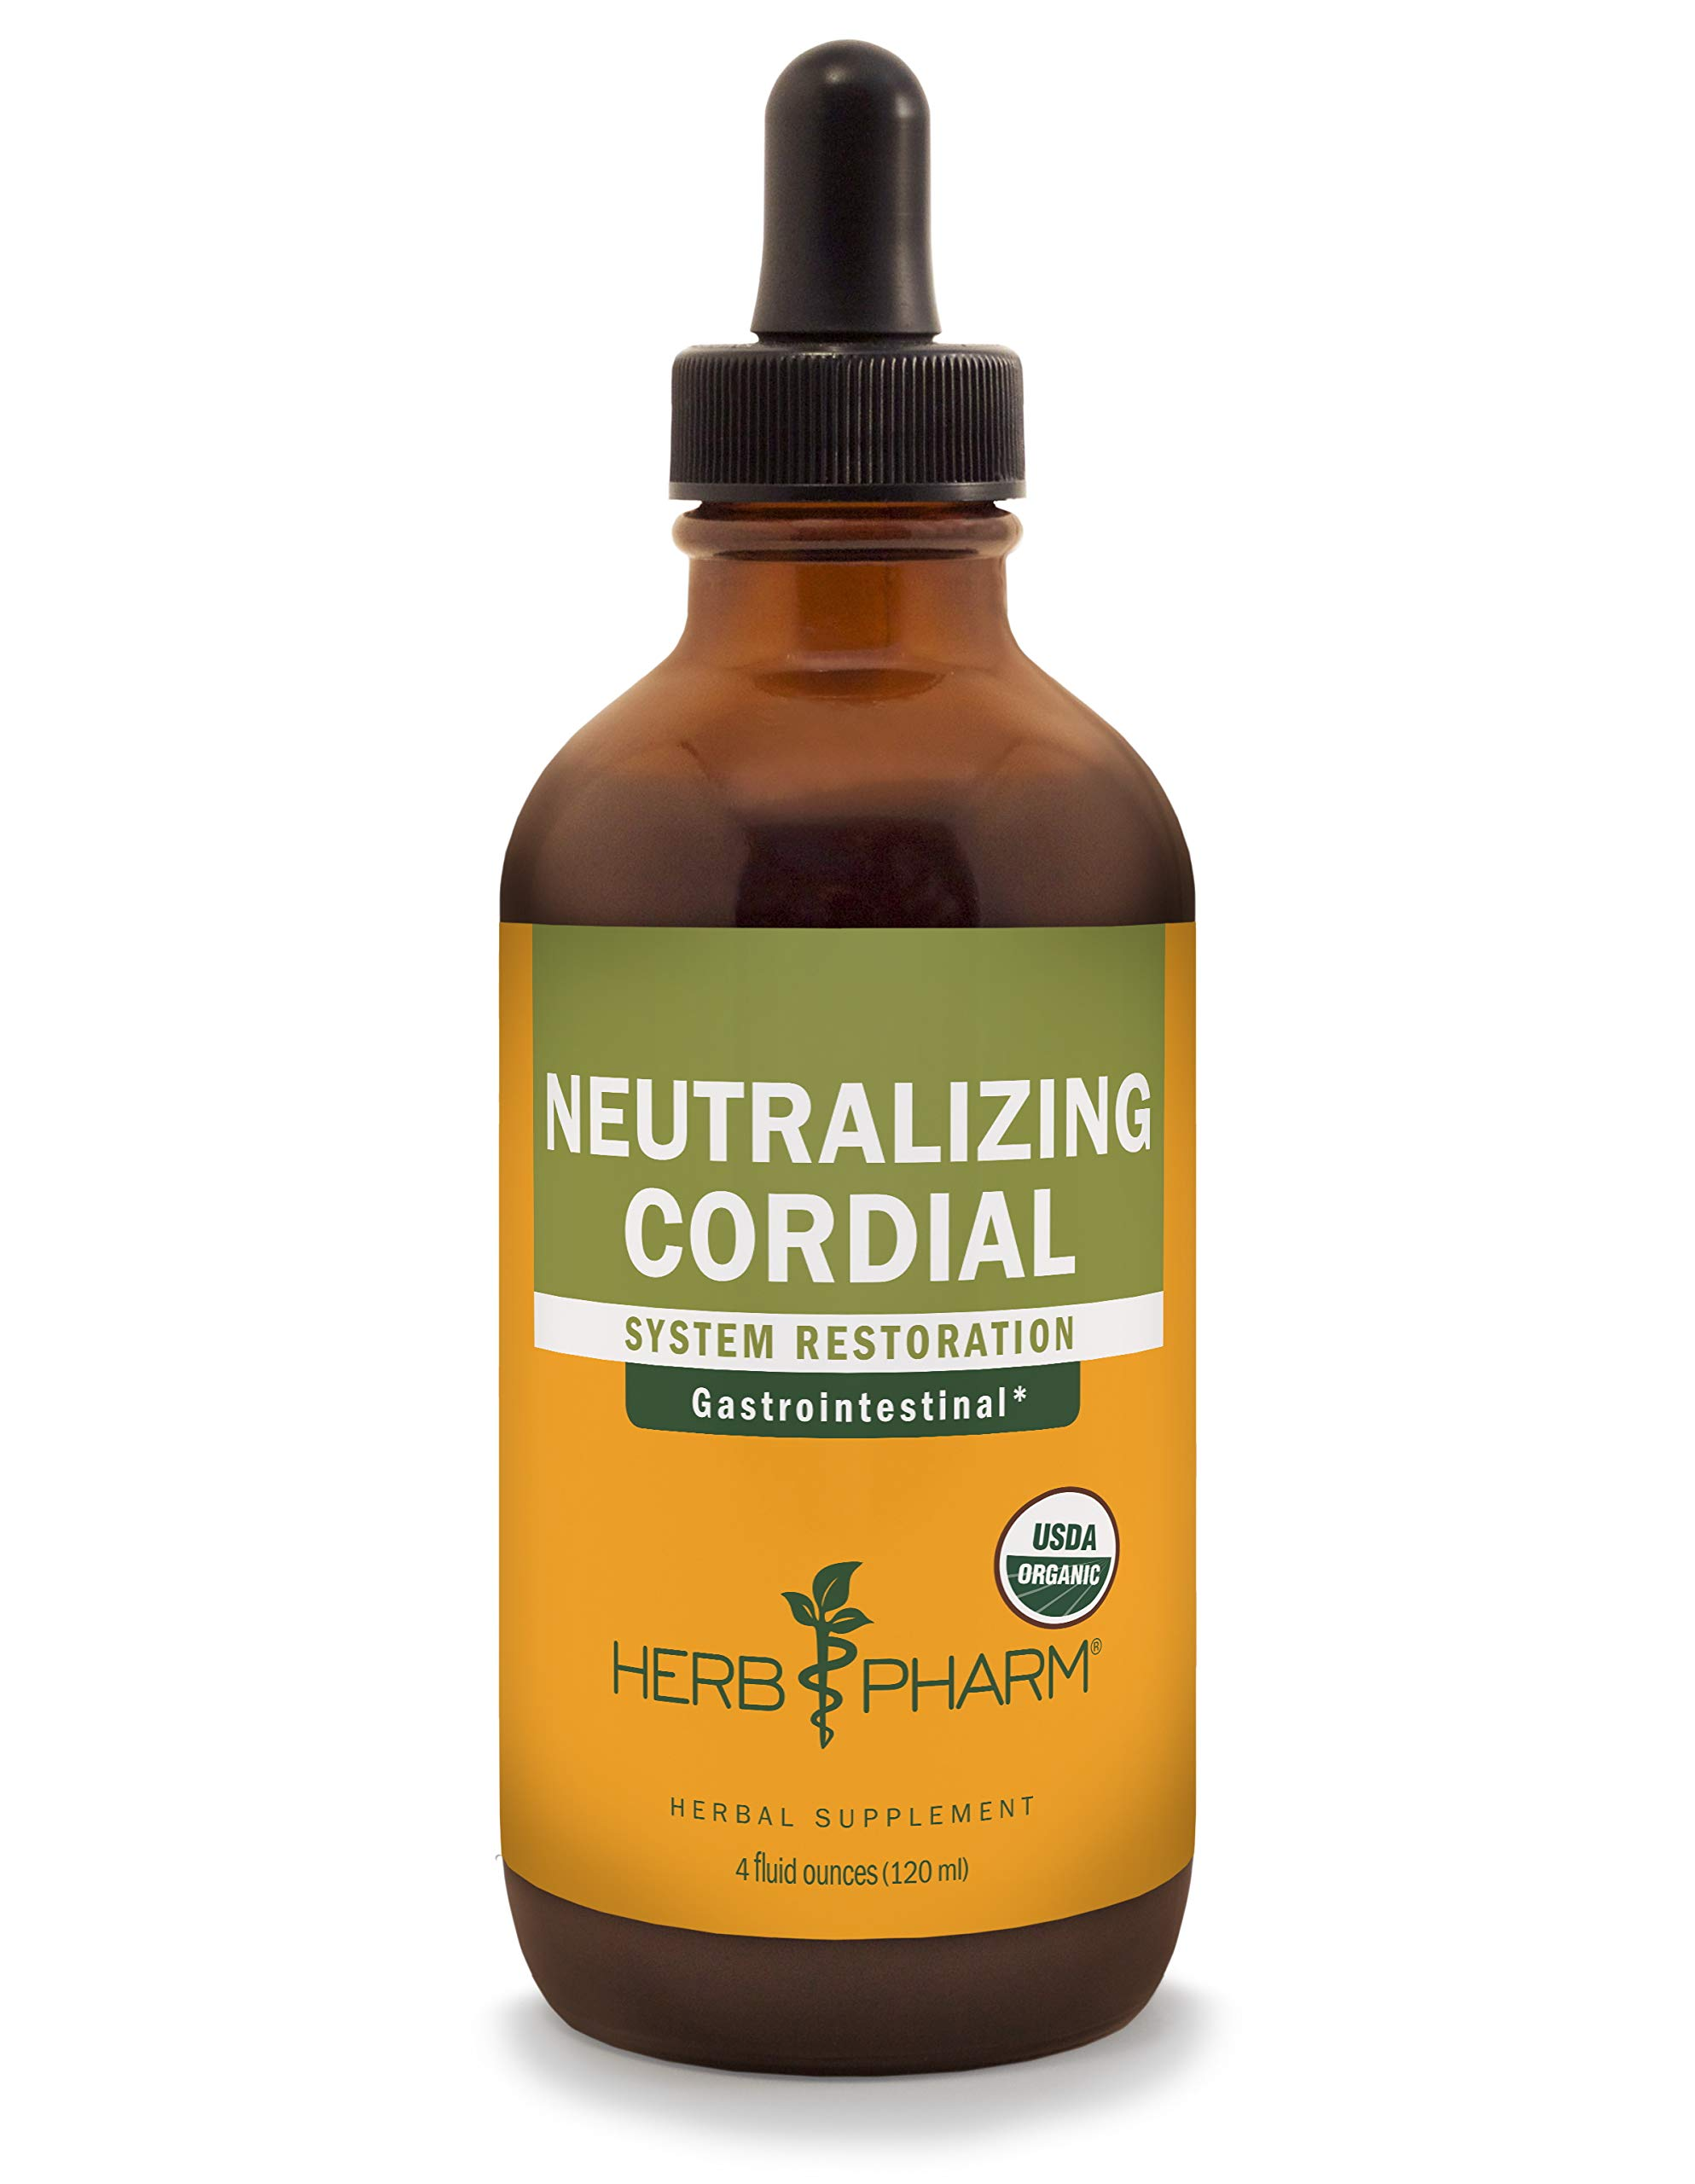 Herb Pharm Neutralizing Cordial Liquid Herbal Formula for Digestive System Support - 4 Ounce